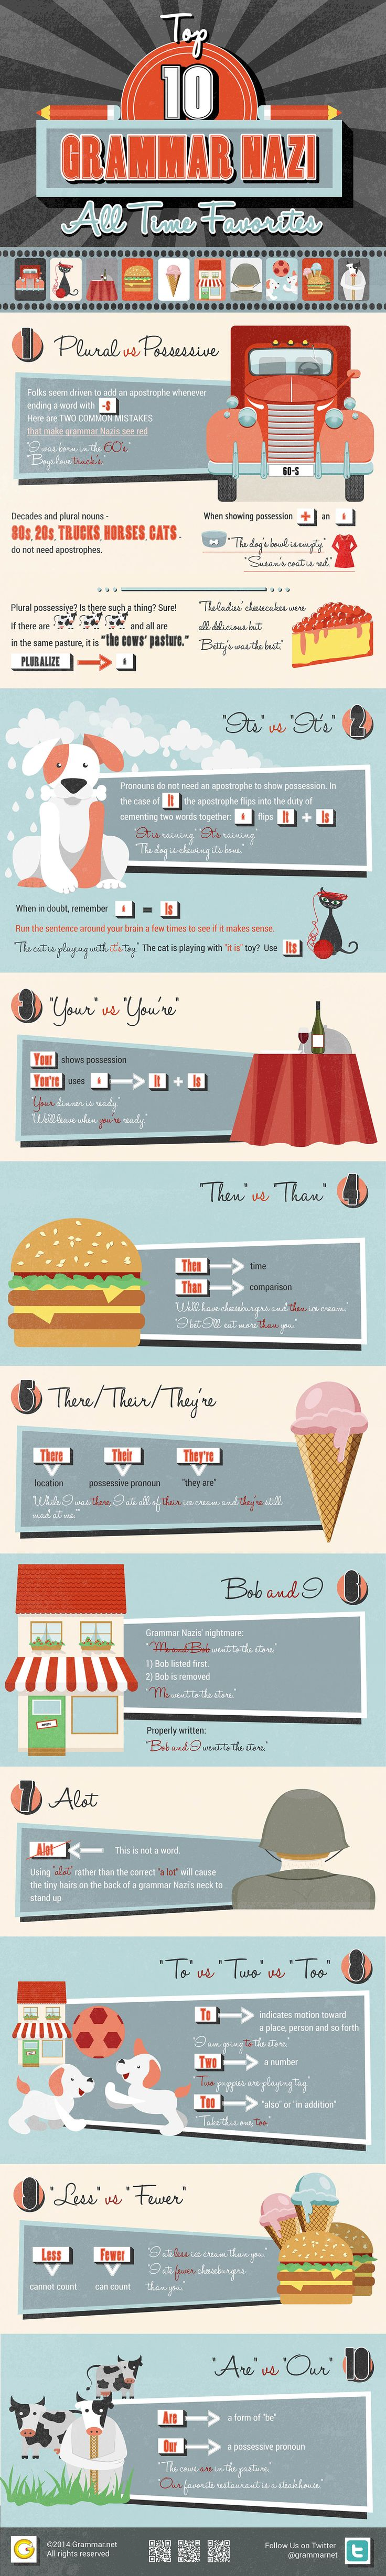 31 best Grammar images on Pinterest | English grammar, Languages and ...